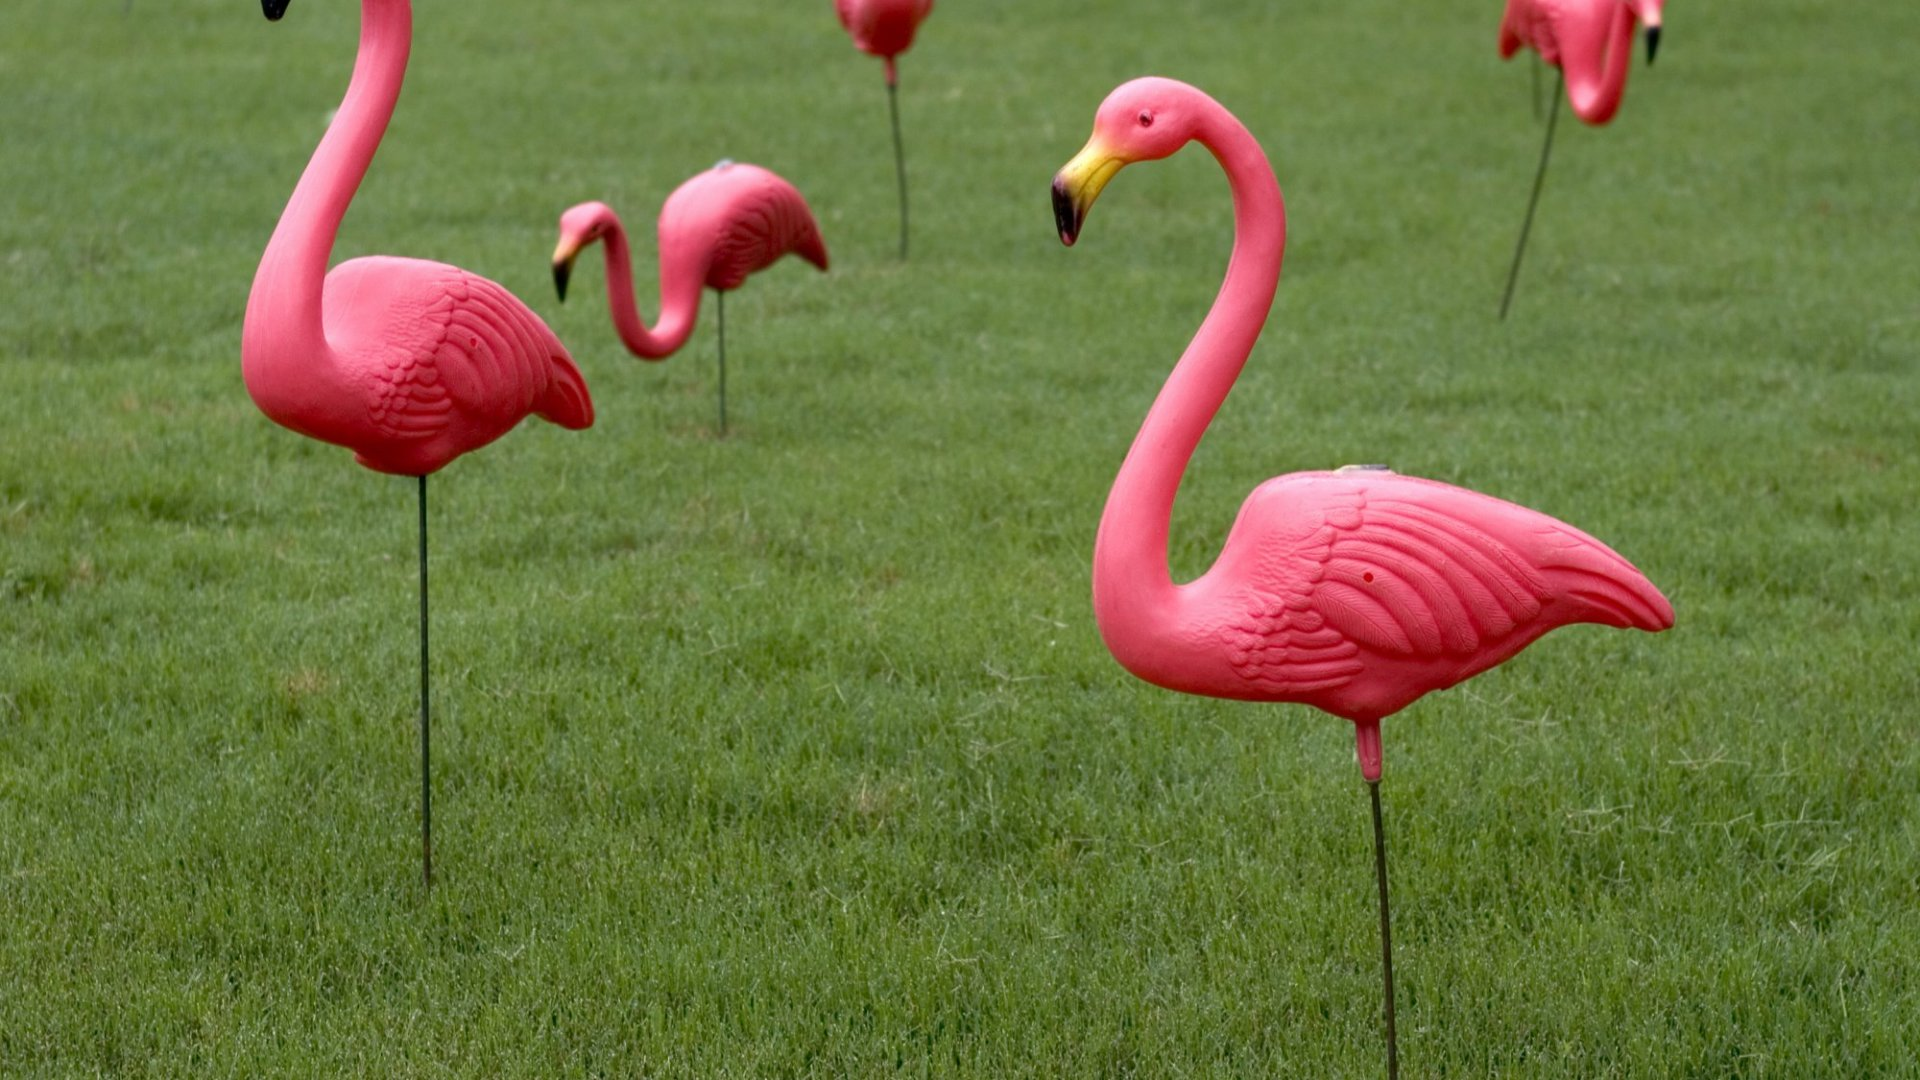 One Major Design Lesson From the Creator of Plastic Pink Flamingos